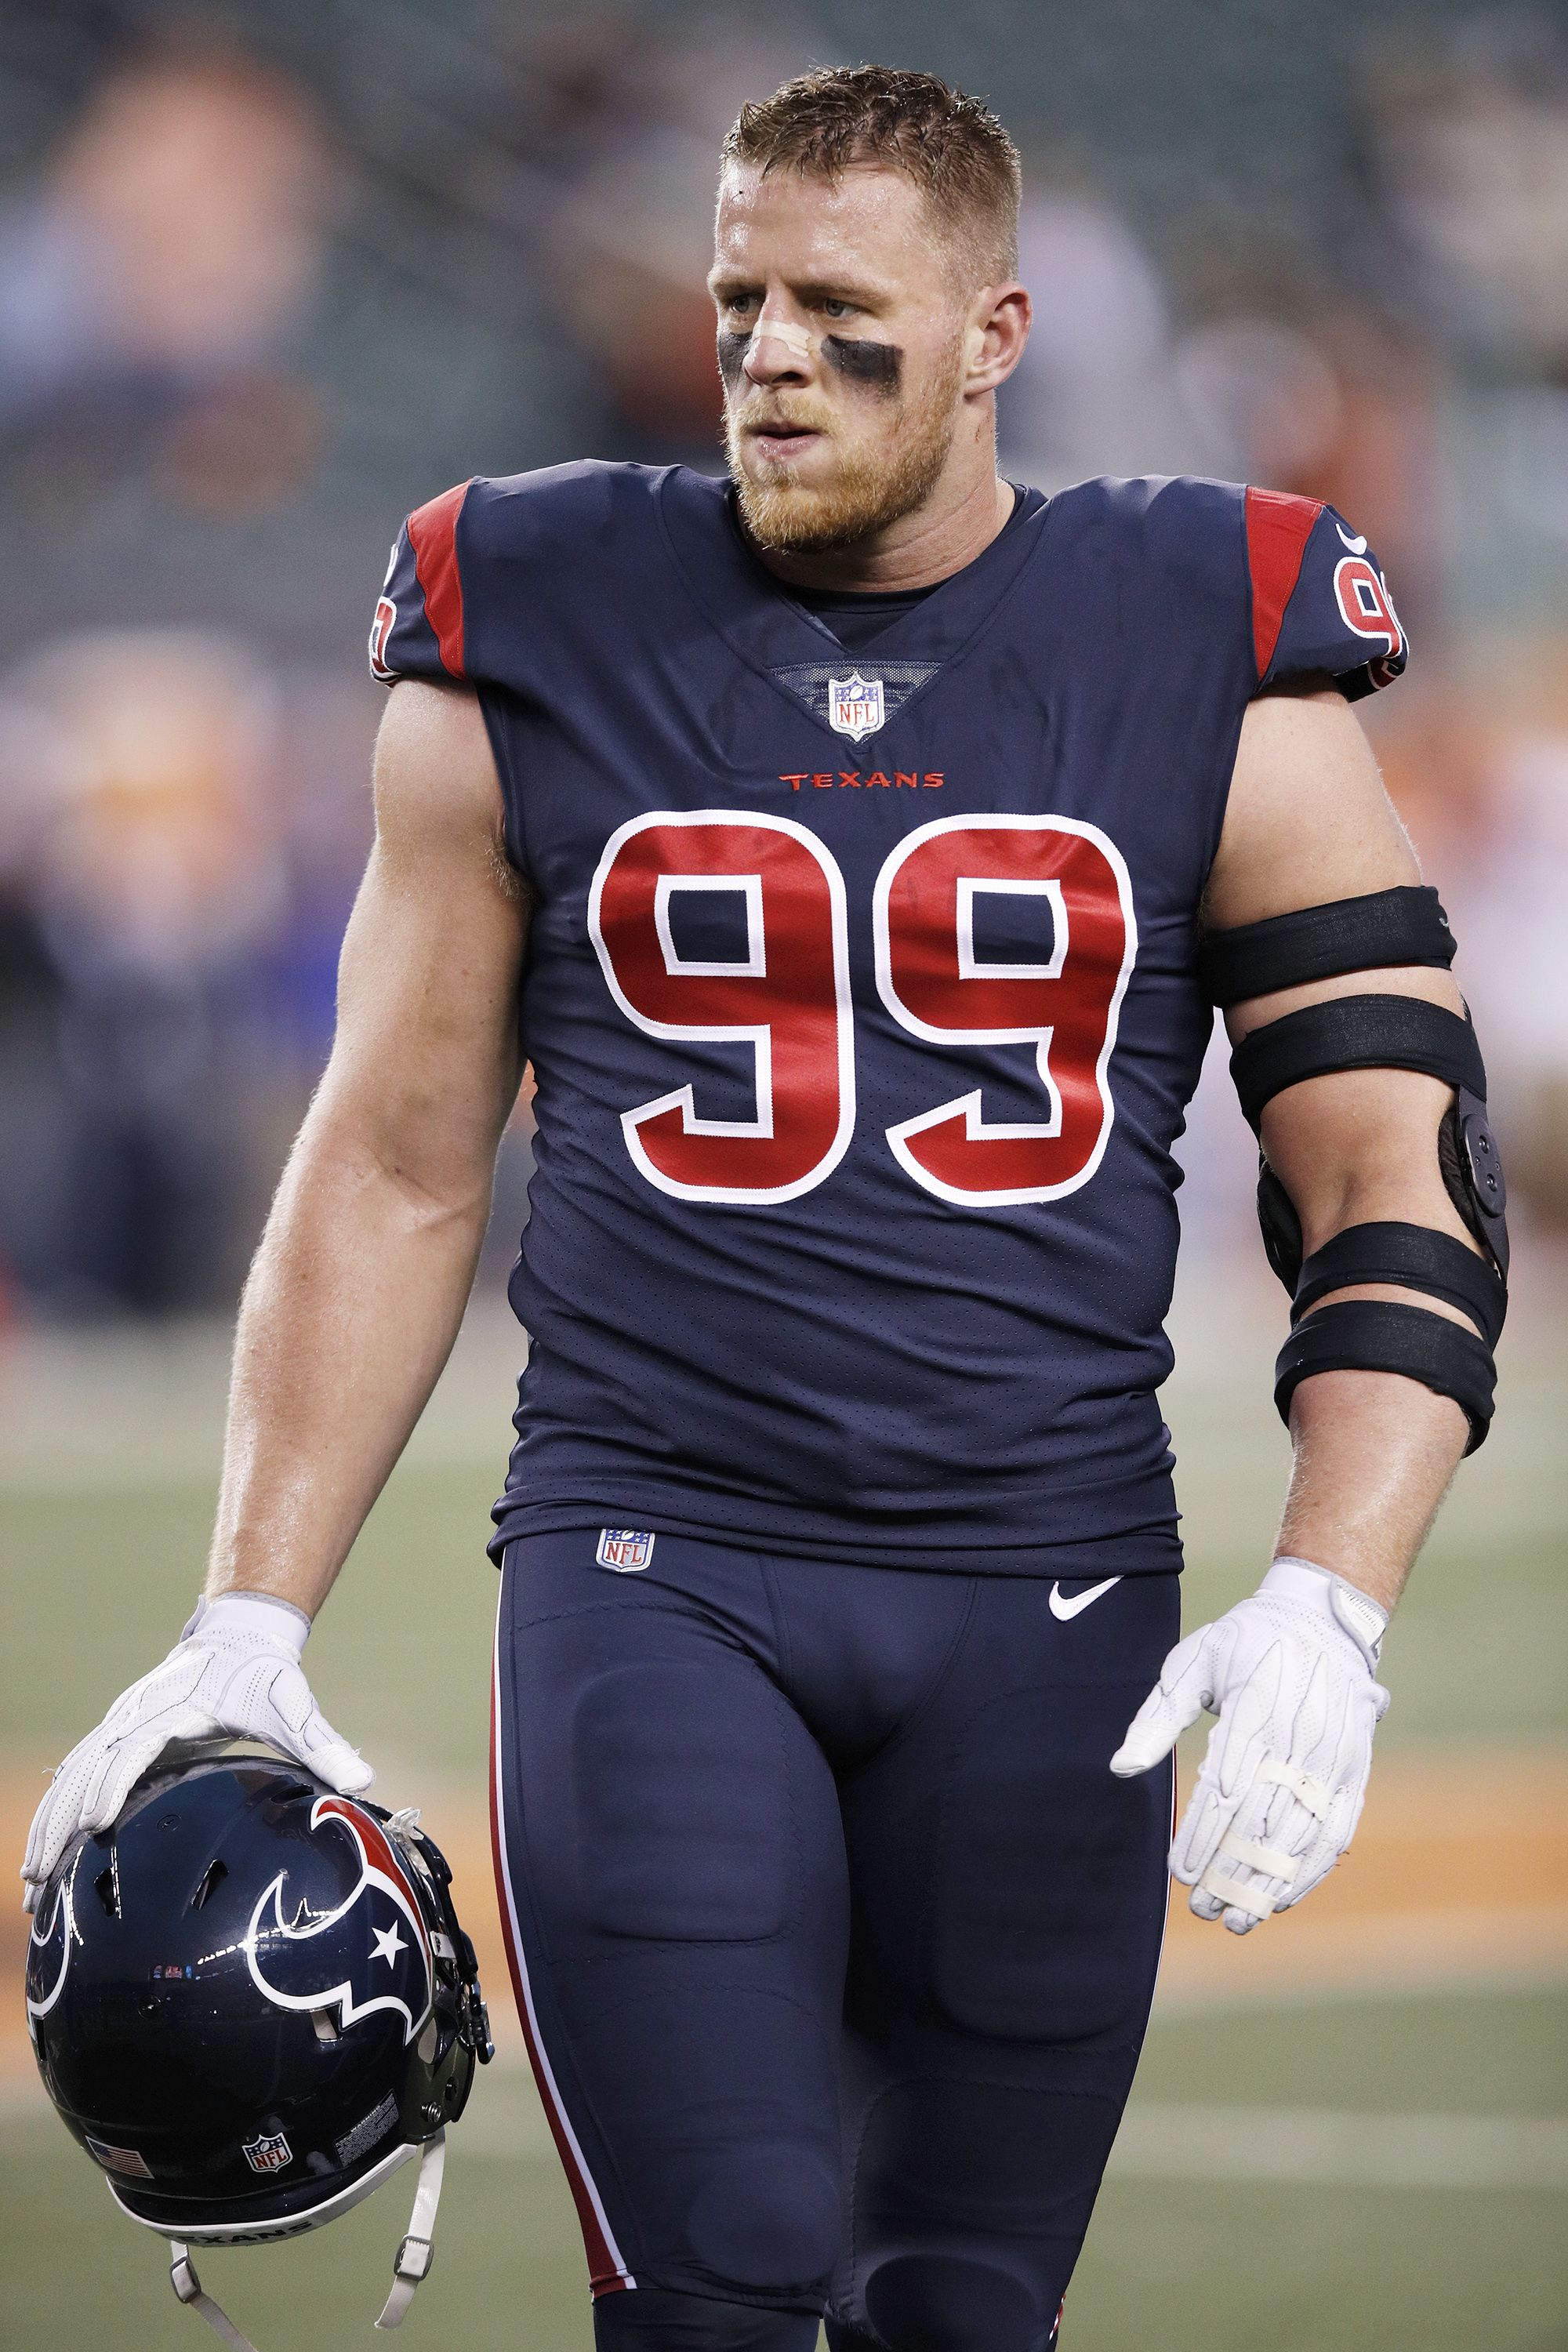 31 Hottest NFL Football Players